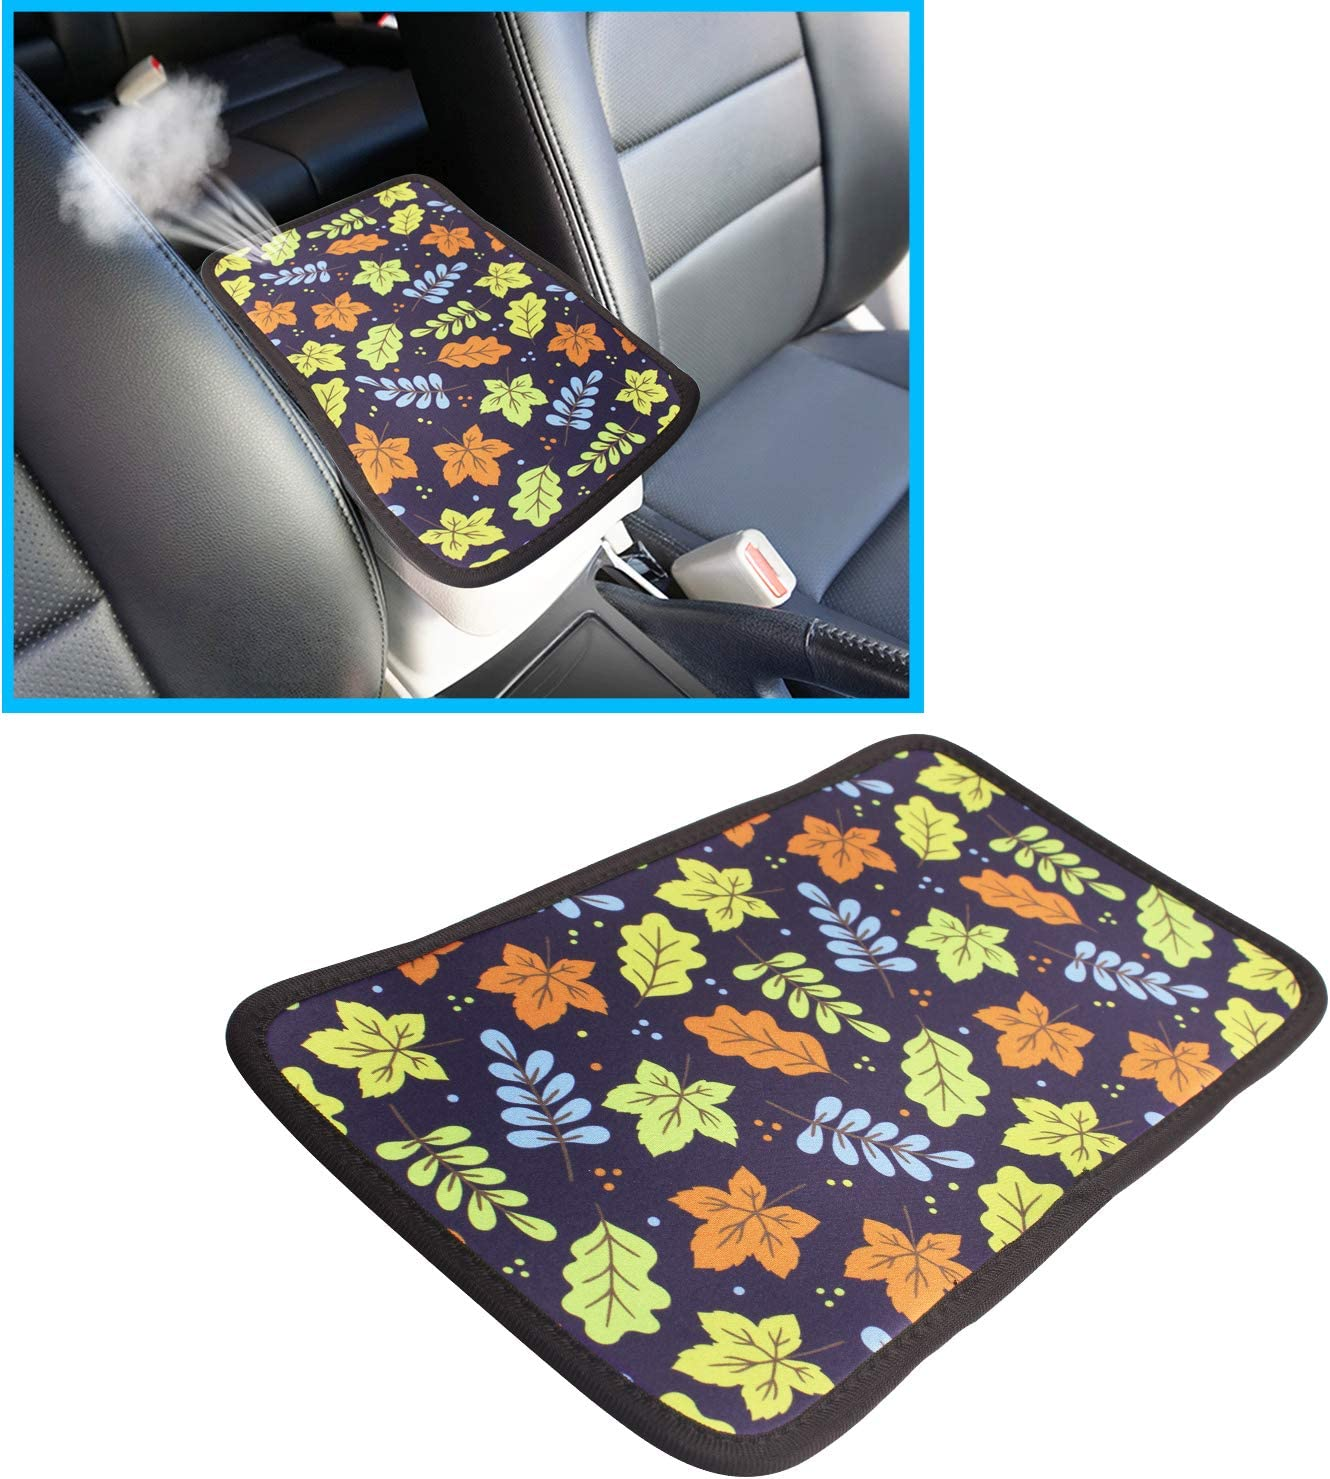 Truck Car Accessories SUV Pattern 2 Universal Car Armrest Cover Fit for Most Vehicle Monrand Center Console Armrest Pad